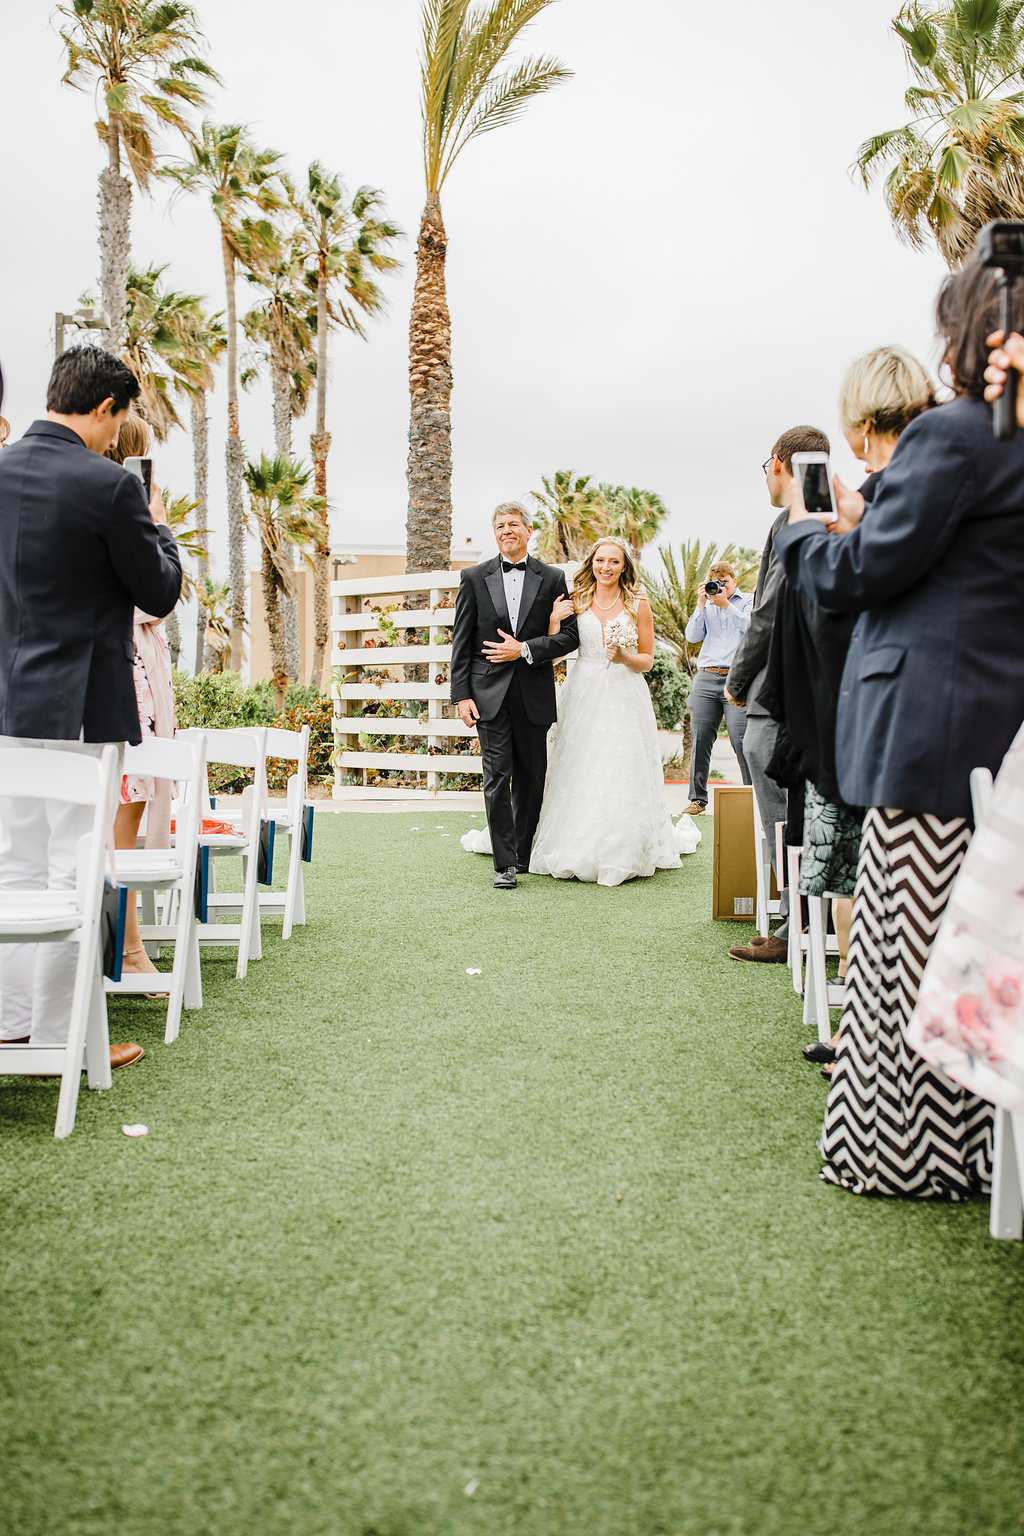 father of the bride walking bride down the aisle los angeles california wedding day photography